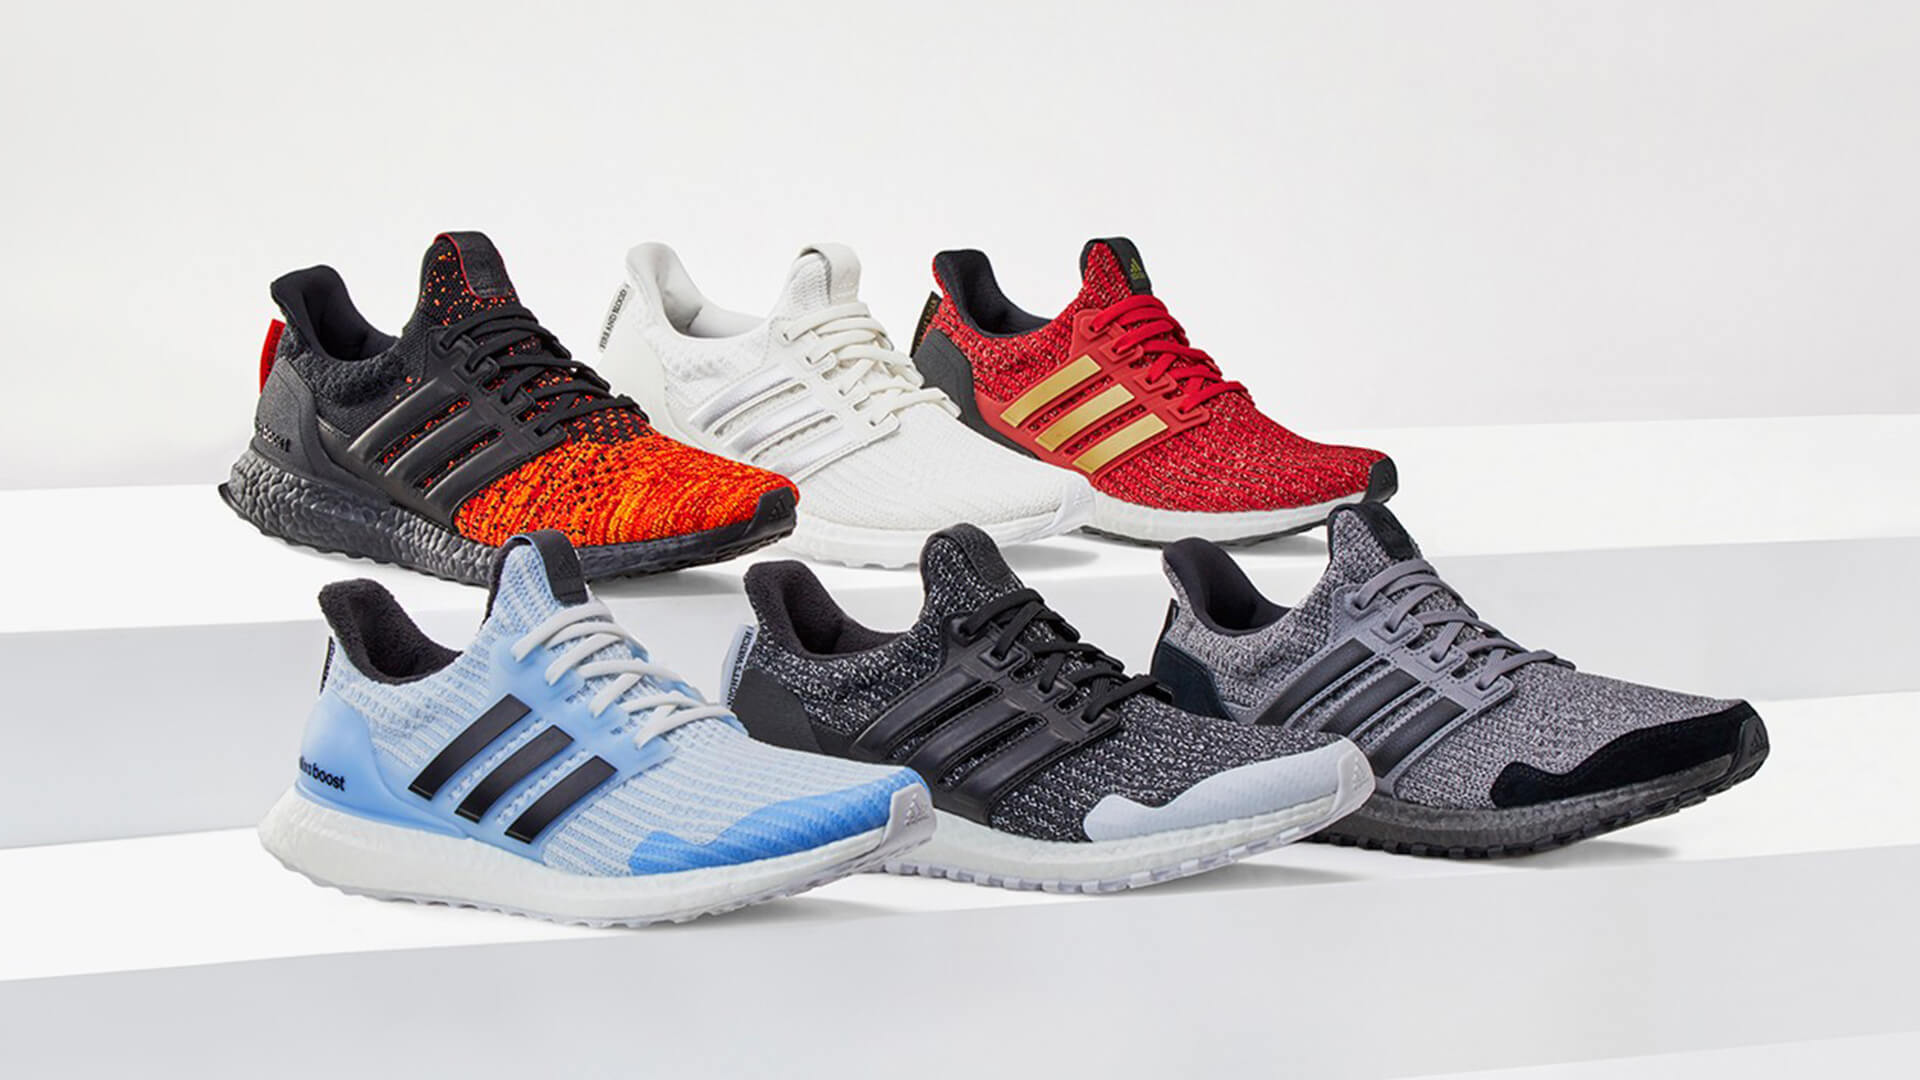 Latest Game of Thrones x adidas Trainer Releases & Next